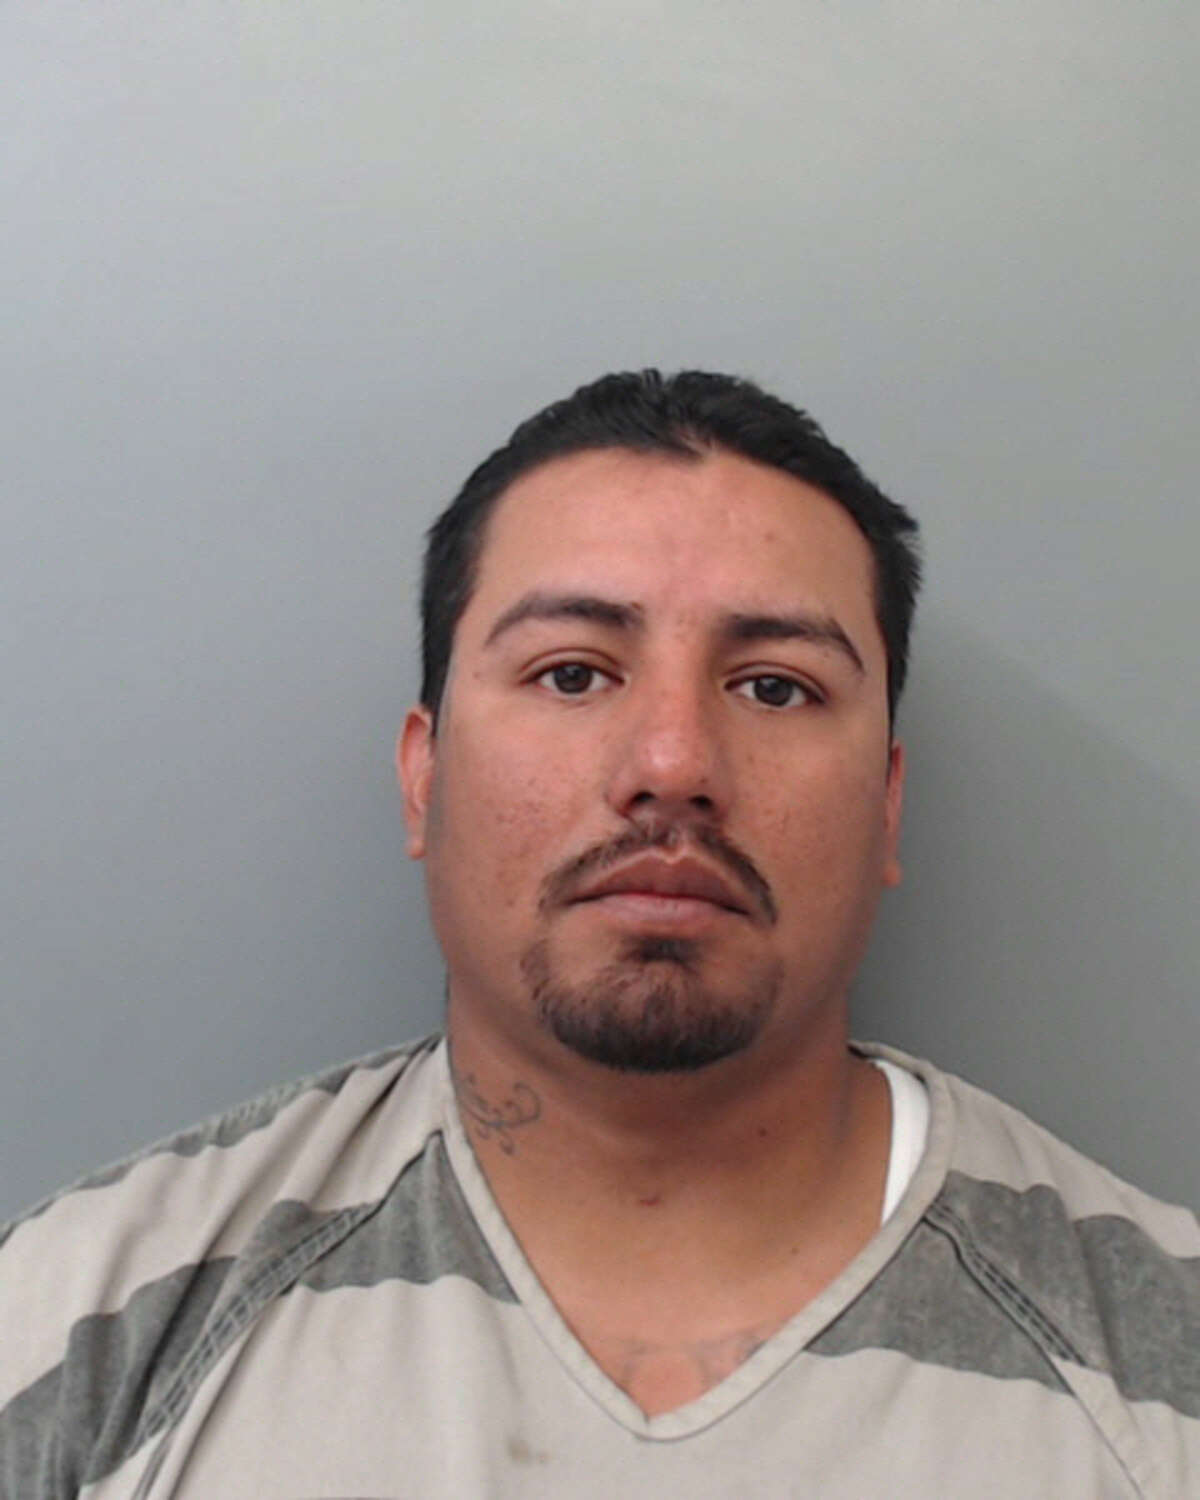 Jose Angel Alvarado, 35, was charged with criminal non-support.